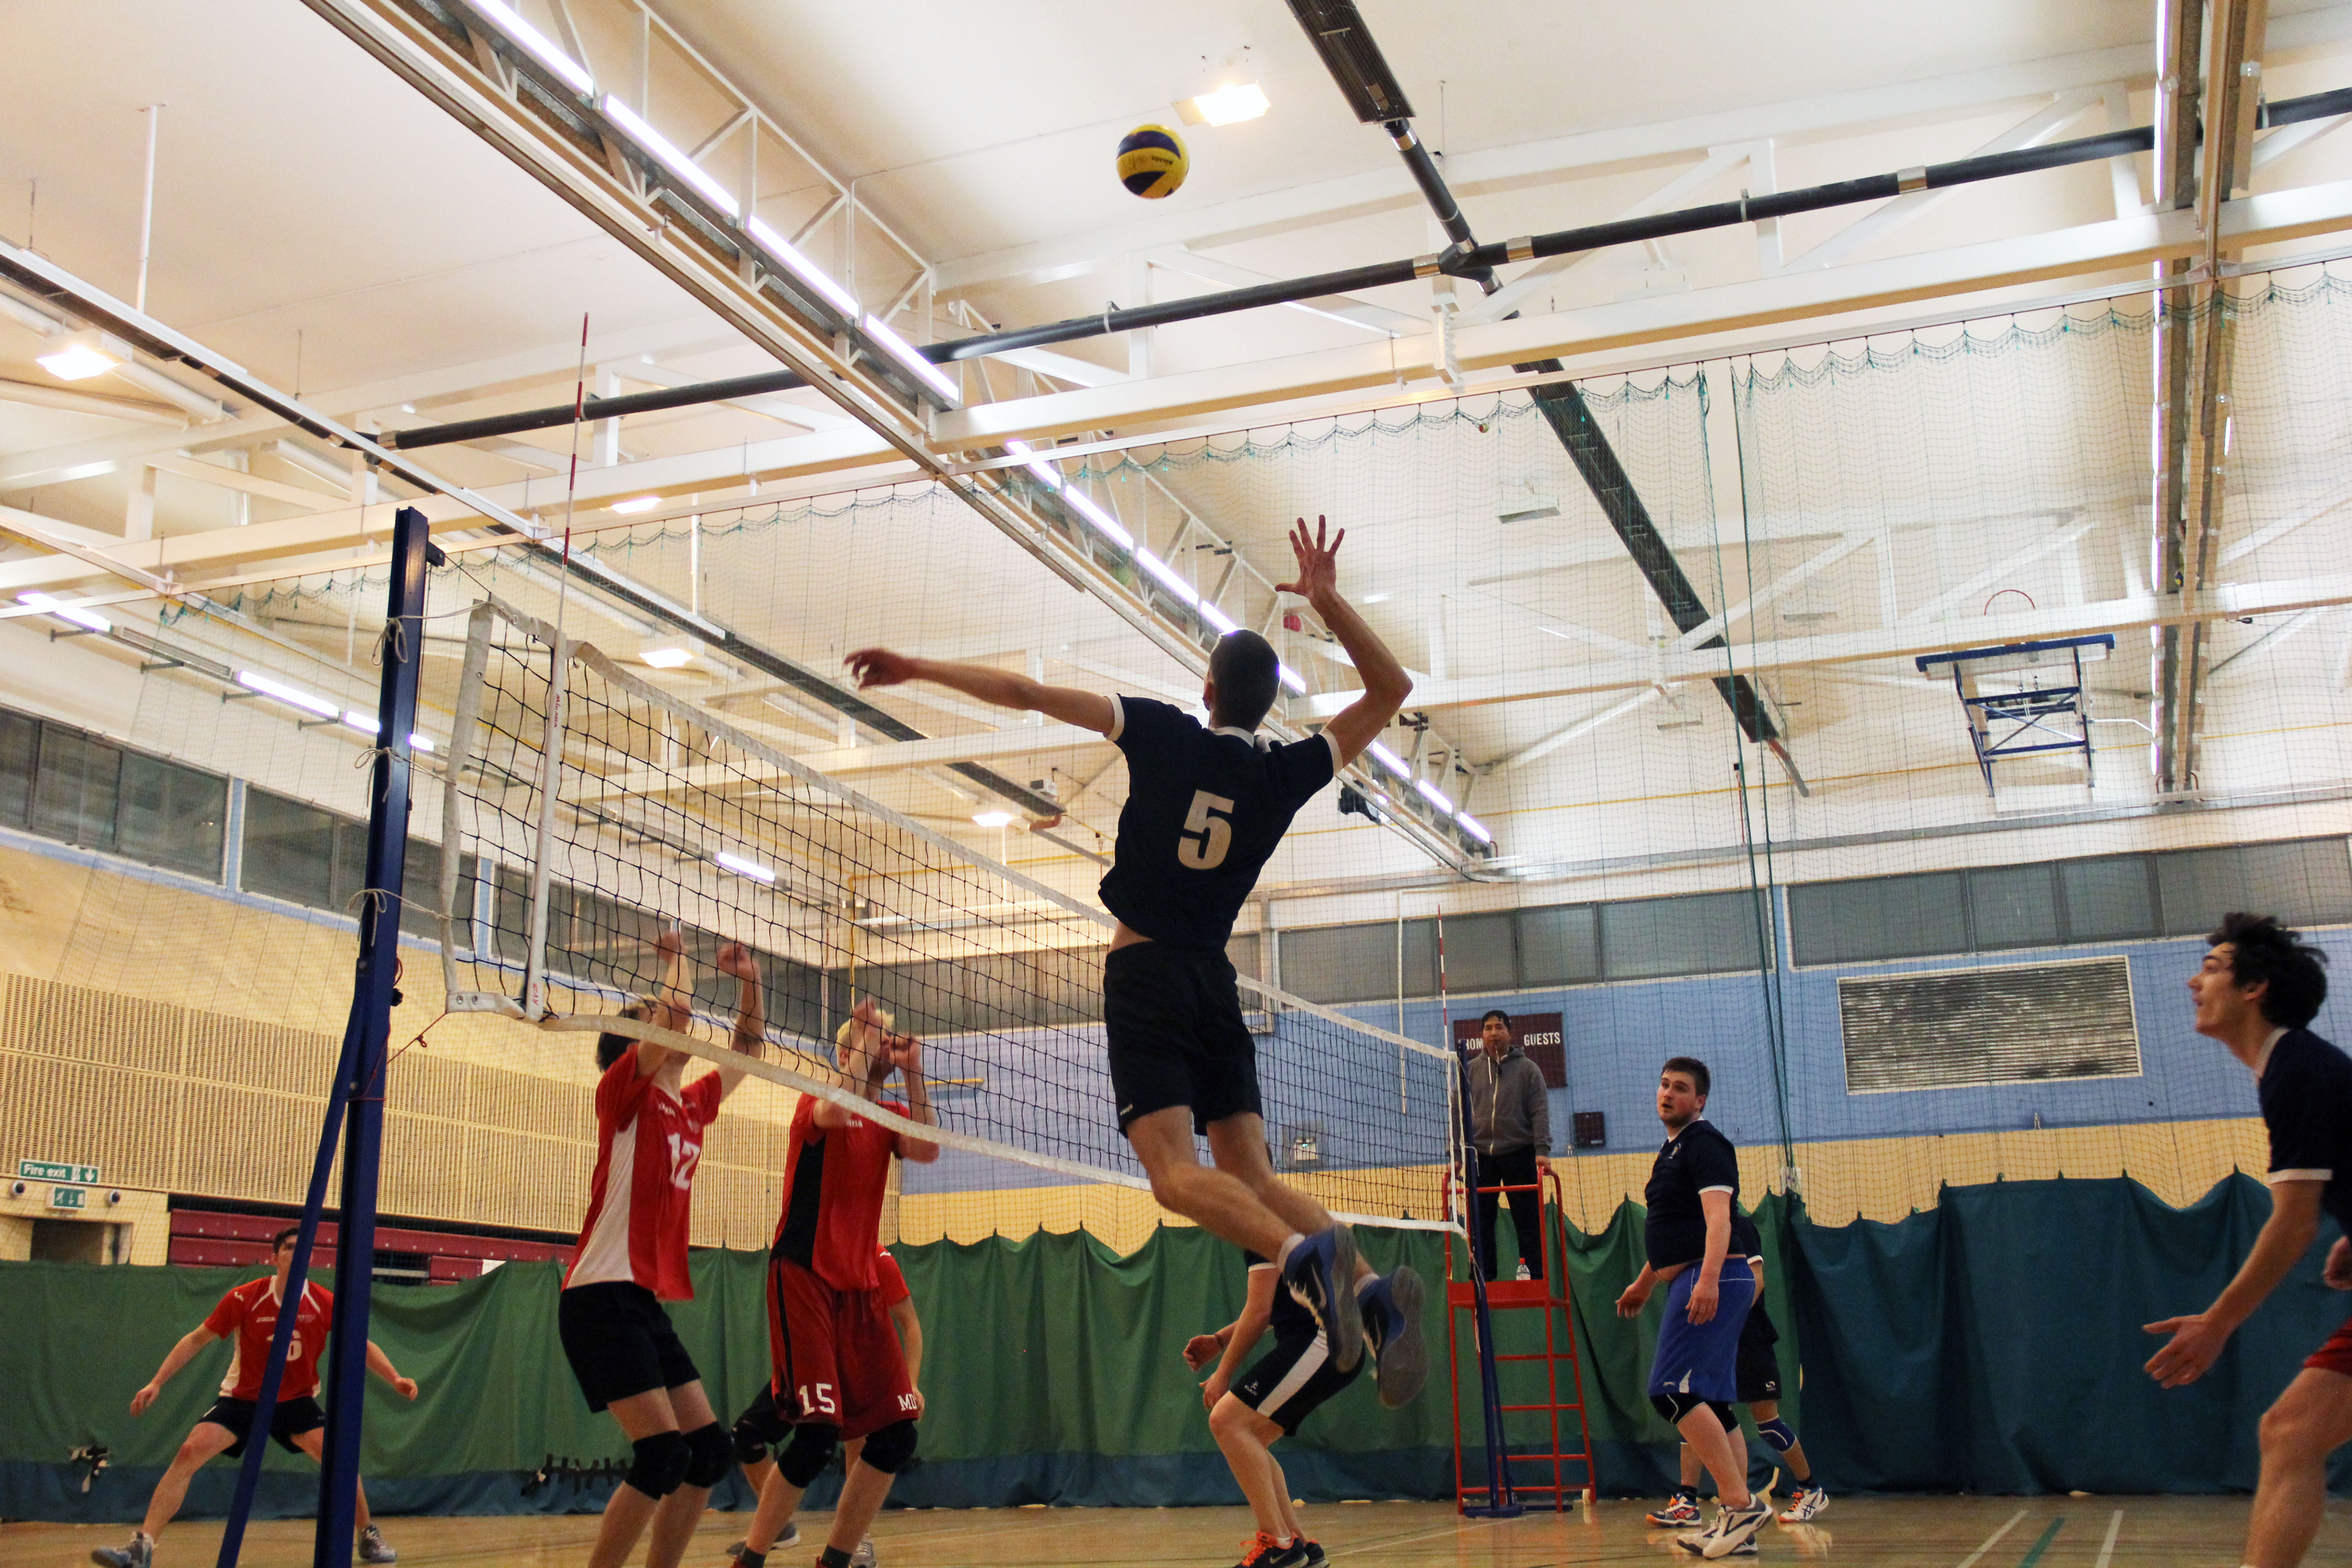 KU men's volleyball team finishes strong